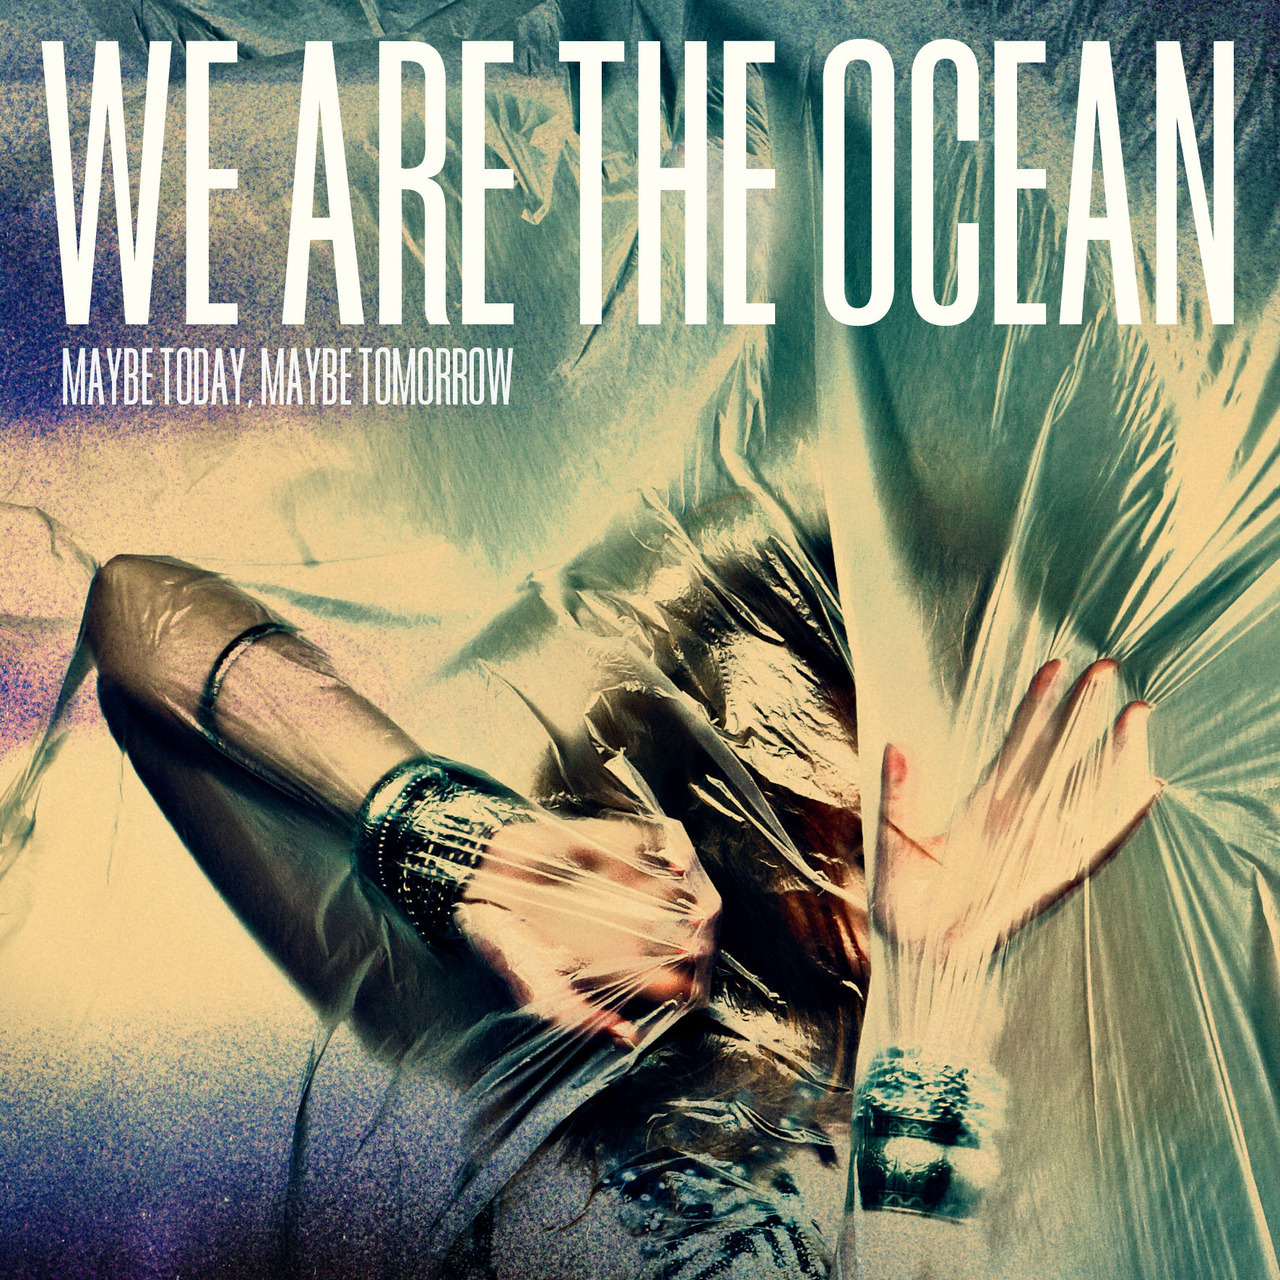 WE ARE THE OCEAN UPDATE The new album 'MAYBE TODAY, MAYBE TOMORROW' is released 17.09.12 in the UK/EU on Hassle Records and 18.09.12 in N. America on Side One Dummy Records. Pre-order the album now from iTunes (exclusive bonus track), Banquet Records (exclusive 14+ album release show on 14.09.12), Hassle Records (exclusive t-shirt bundle) or HMV (signed copies). All these pre-orders, as well as Amazon.de pre-orders are available here. EXCLUSIVE STREAM: Check out the brand new track 'Story of a Modern Child' from MTMT over at NoiseCreep.com in the States. Share this around! ACOUSTIC INSTORES & SIGNINGS: To go along with the tour in September, there will be a whole bunch of acoustic performances & signings instore at various HMV or Fopp shops. Check the full schedule, get further details of which are performances & which are just signings and add yourselves to the Facebook Events here. UK & EU AUTUMN CLUB TOUR: All of the dates & ticket links for the Autumn 2012 UK/EU tour can be found here. A lot of these are close to selling out, so don't muck about. NEW VIDEO FOR 'THE ROAD': Check it out here. German fans, you can view the video here. 'The Road' is Video Of The Week on Kerrang! TV, has also been added to ScuzzTV and the track has been added to the Radio 1 daytime playlist. BIG TIME!